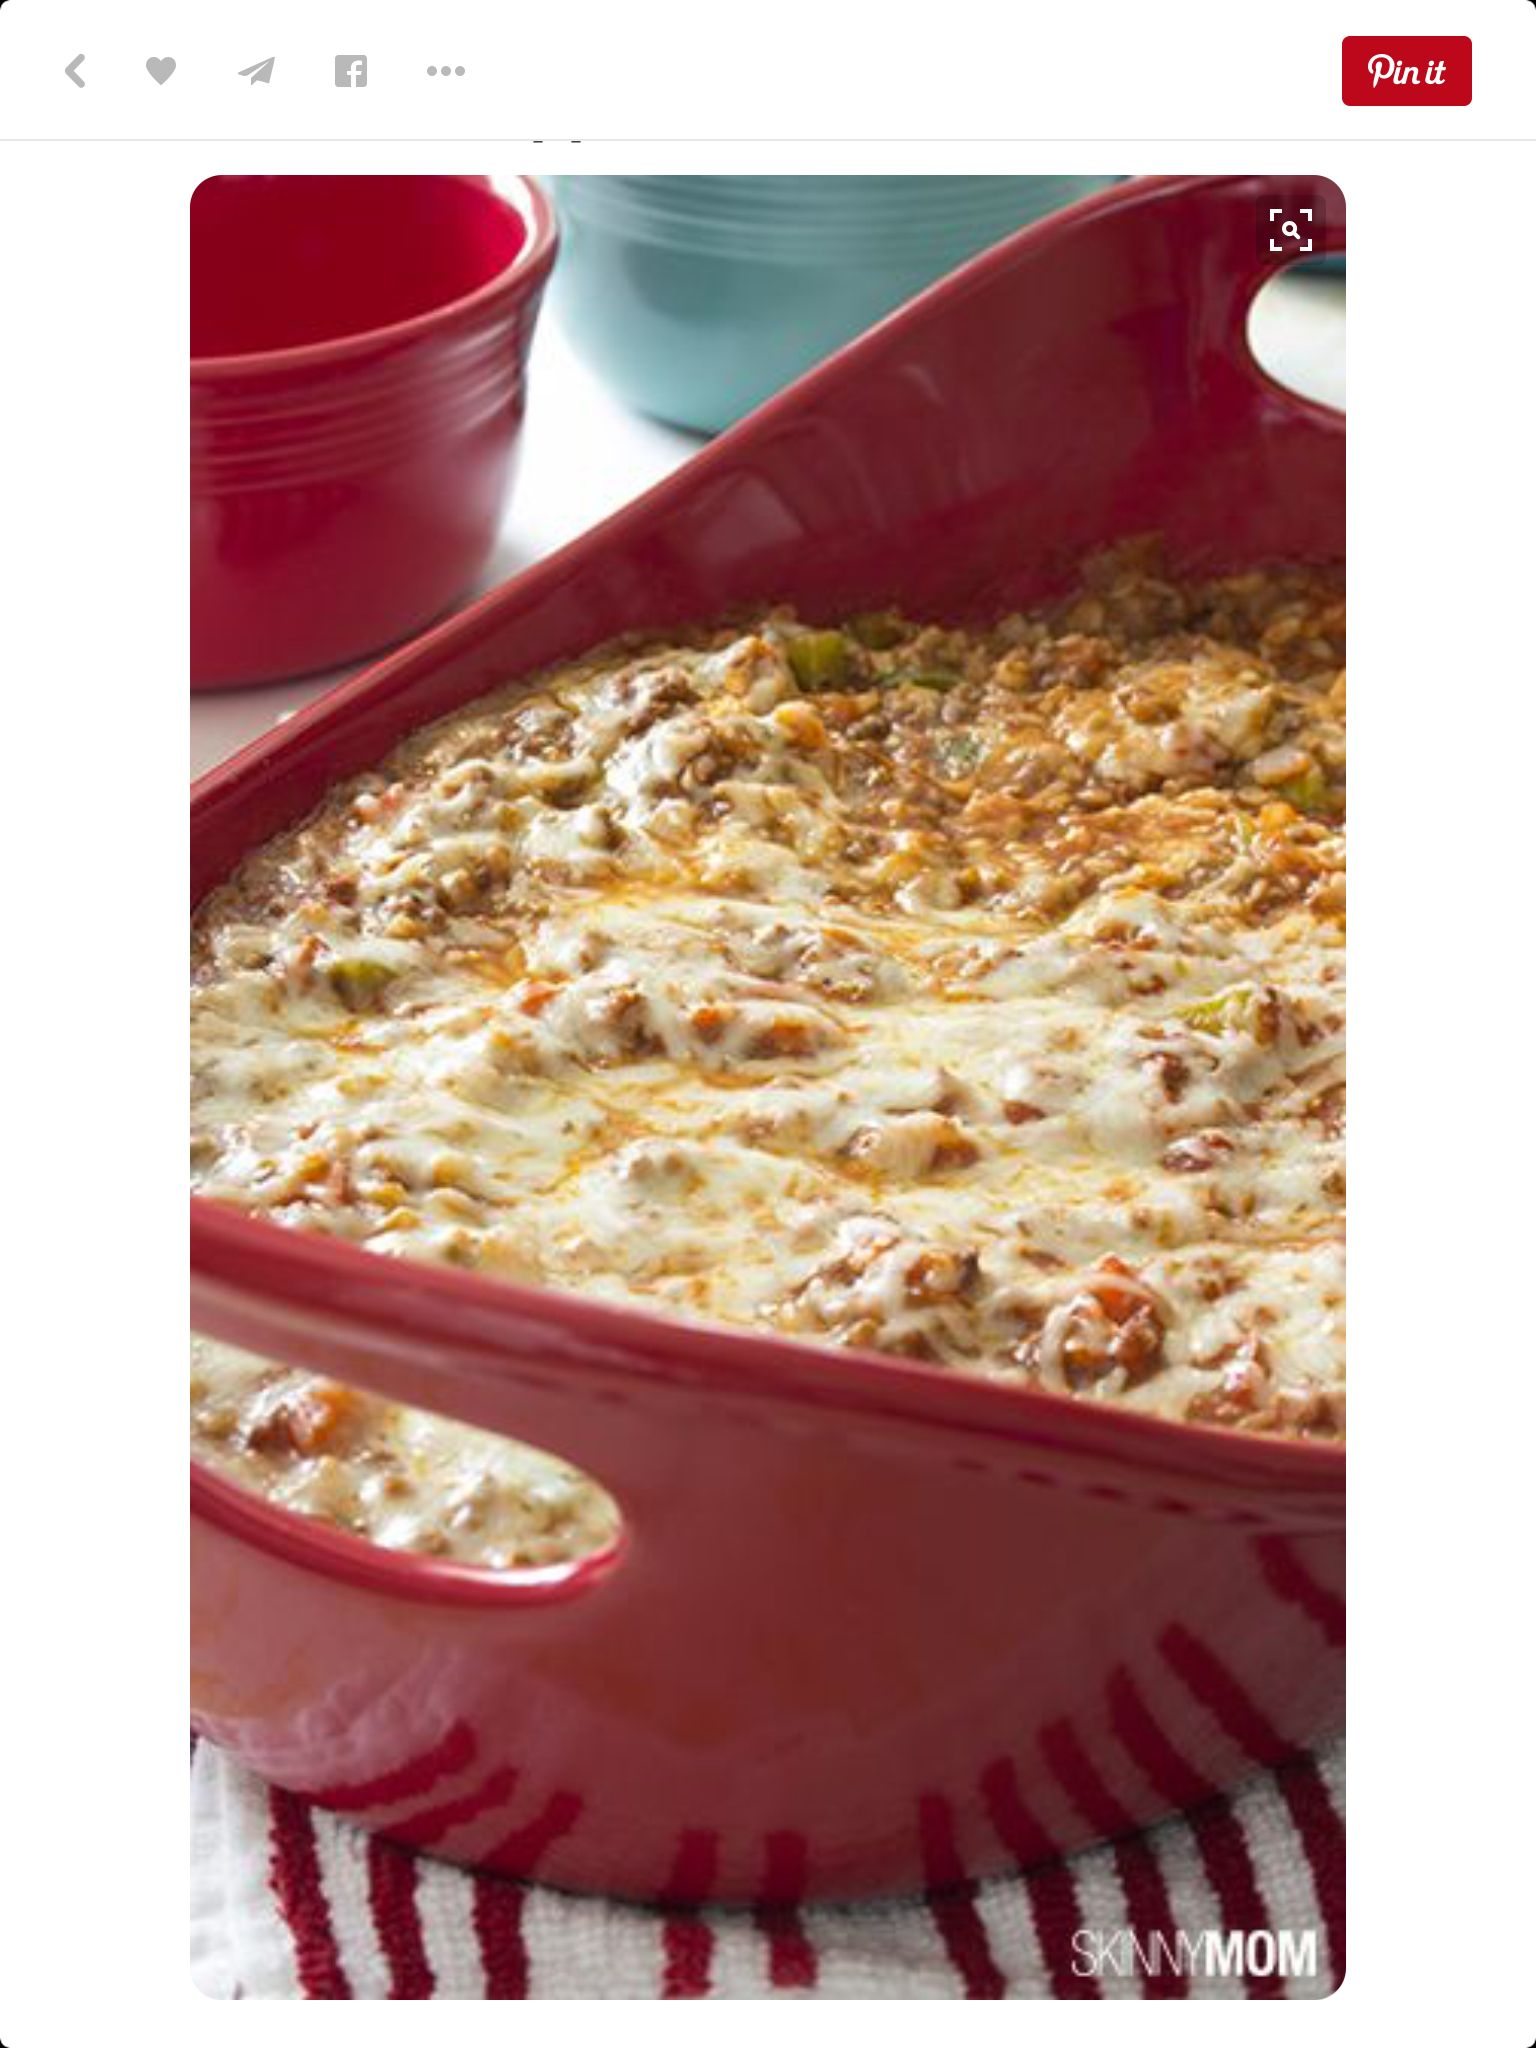 Mom S Rice Stuffing 2 Pounds Cooked Ground Beef 8 Cups Cooked Rice Or Six Cups 1 4 Cup Parmesan Cheese 1 C Cooking Recipes Recipes Low Calorie Casserole